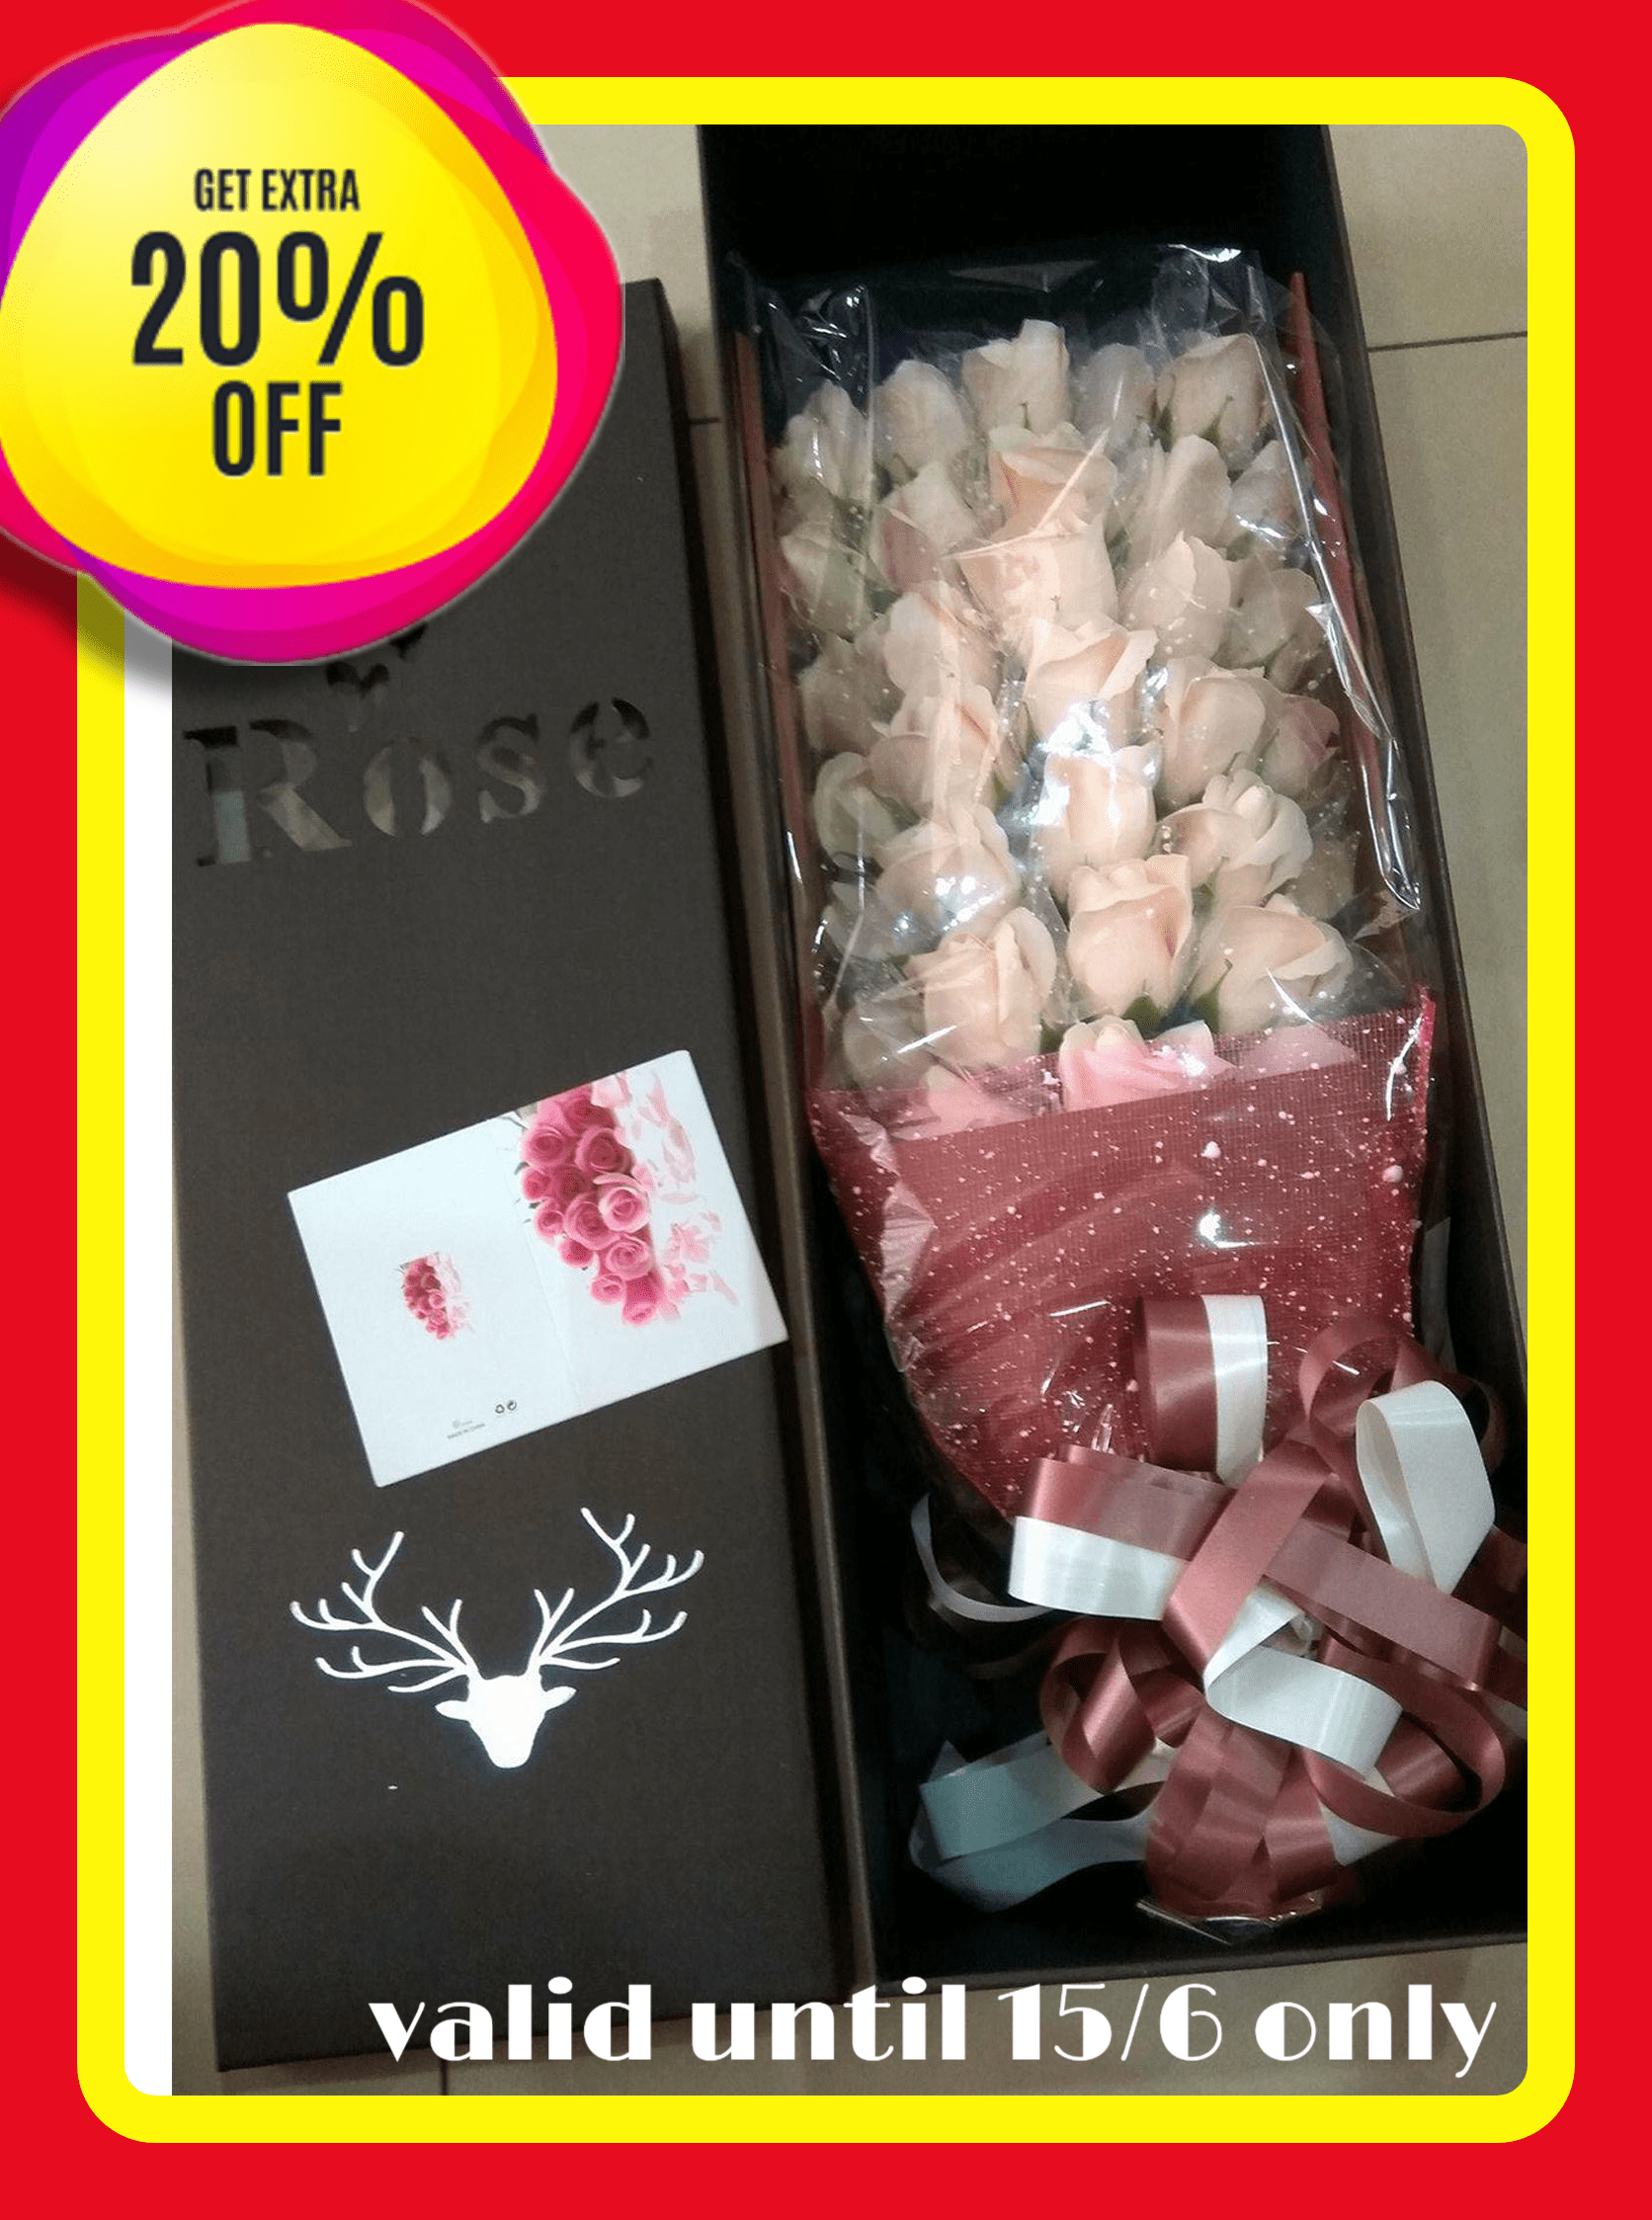 Handmade Bundle Valentine / Convo / Party 33 Fragrance Soap Rose Flower (Yellowish White) with box FREE card